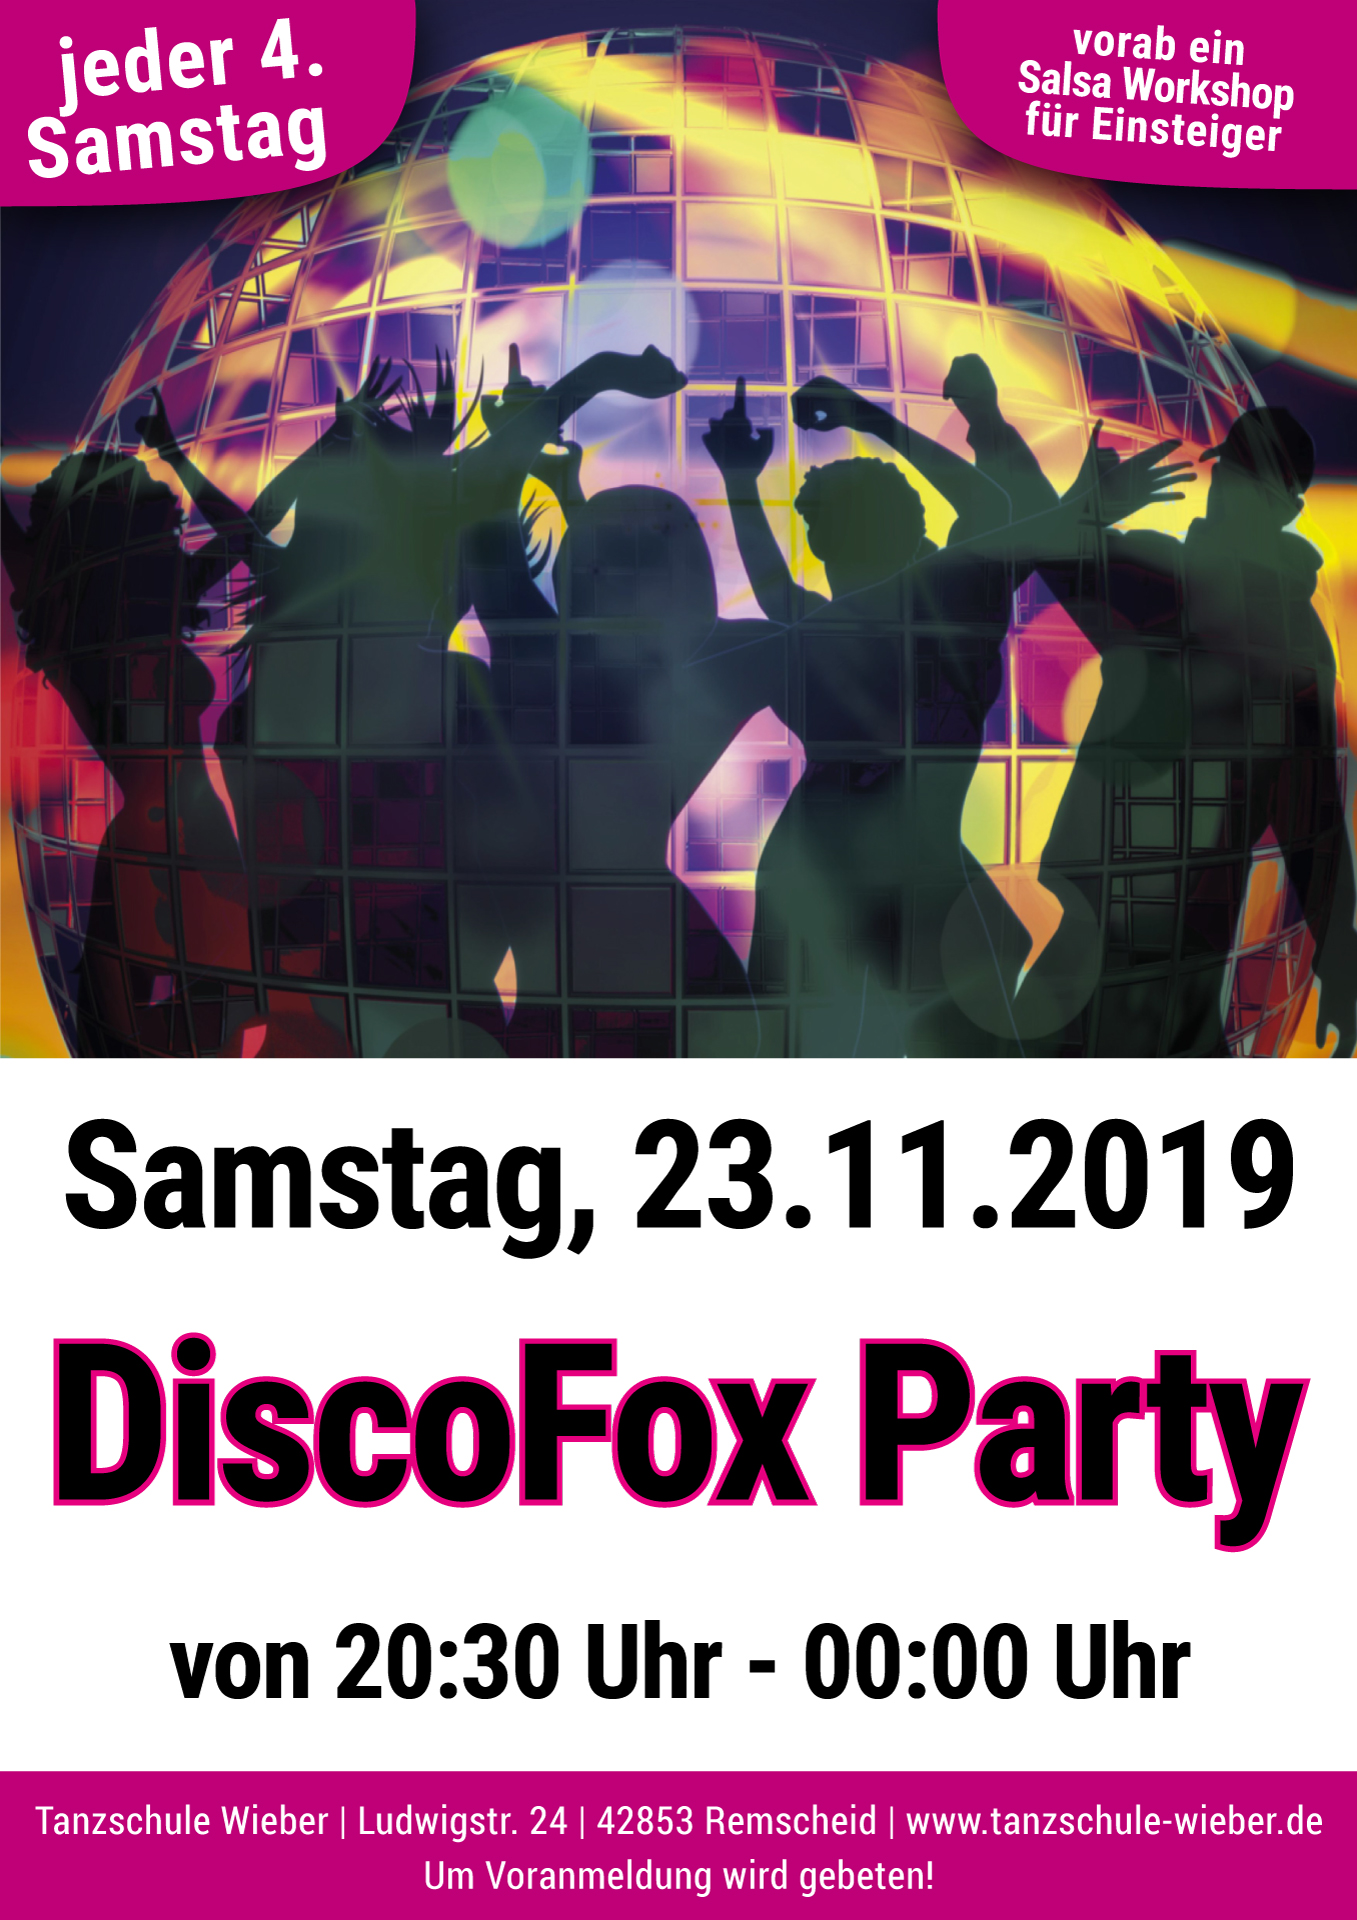 dfparty-flyer_2019_11_23.jpg